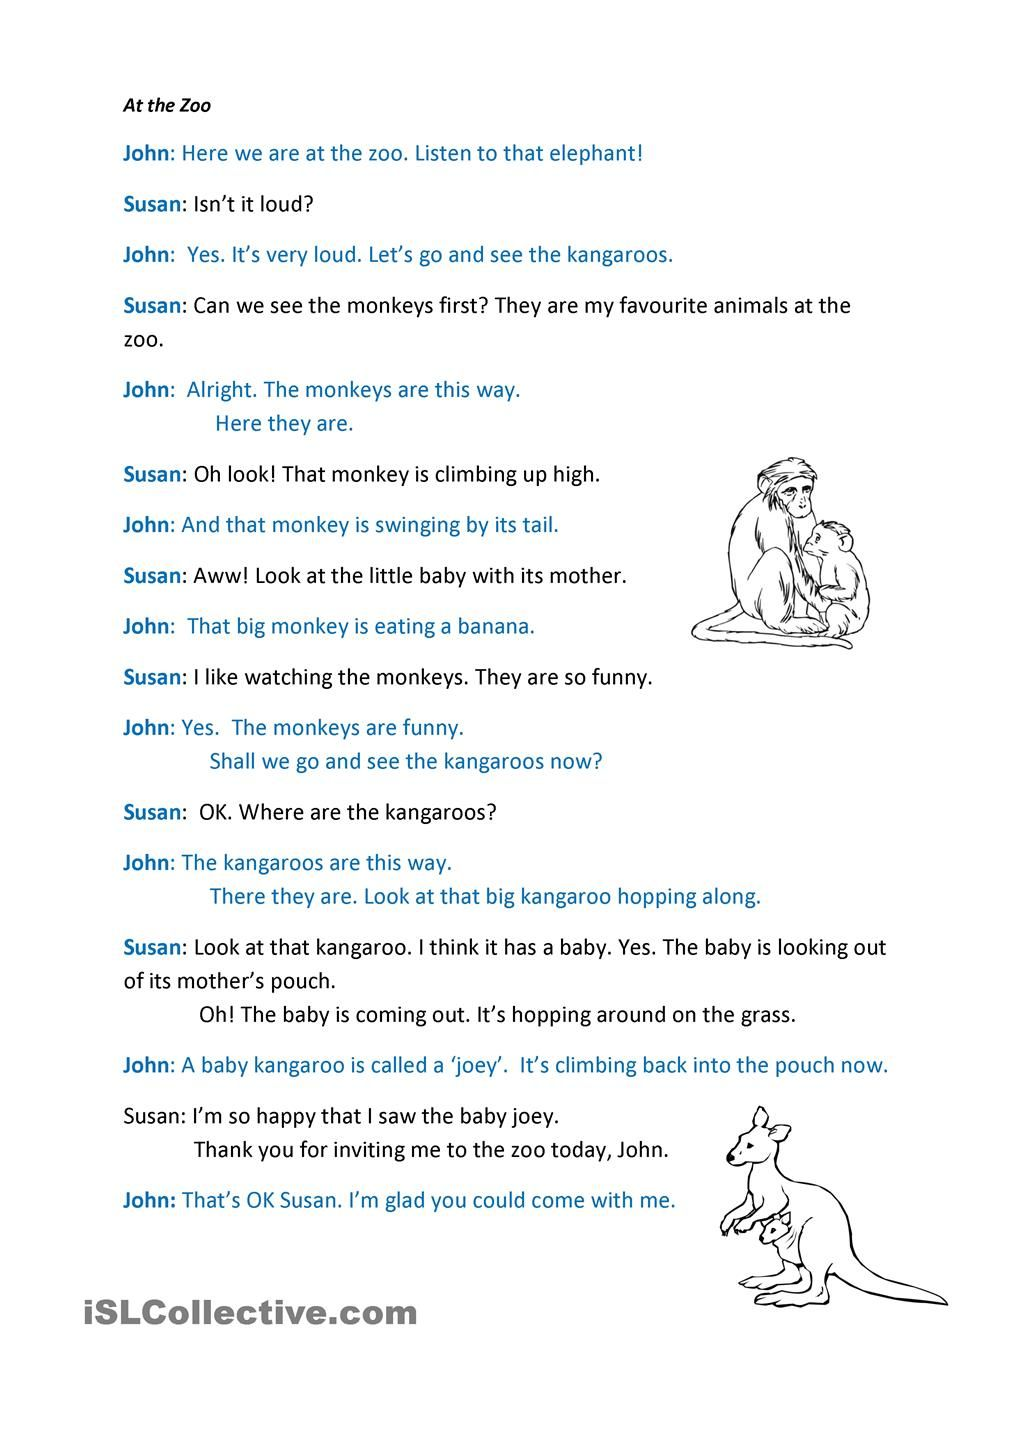 Worksheets Dialogue Worksheets at the zoo dialogue world pinterest zoos worksheets and worksheet free esl printable made by teachers